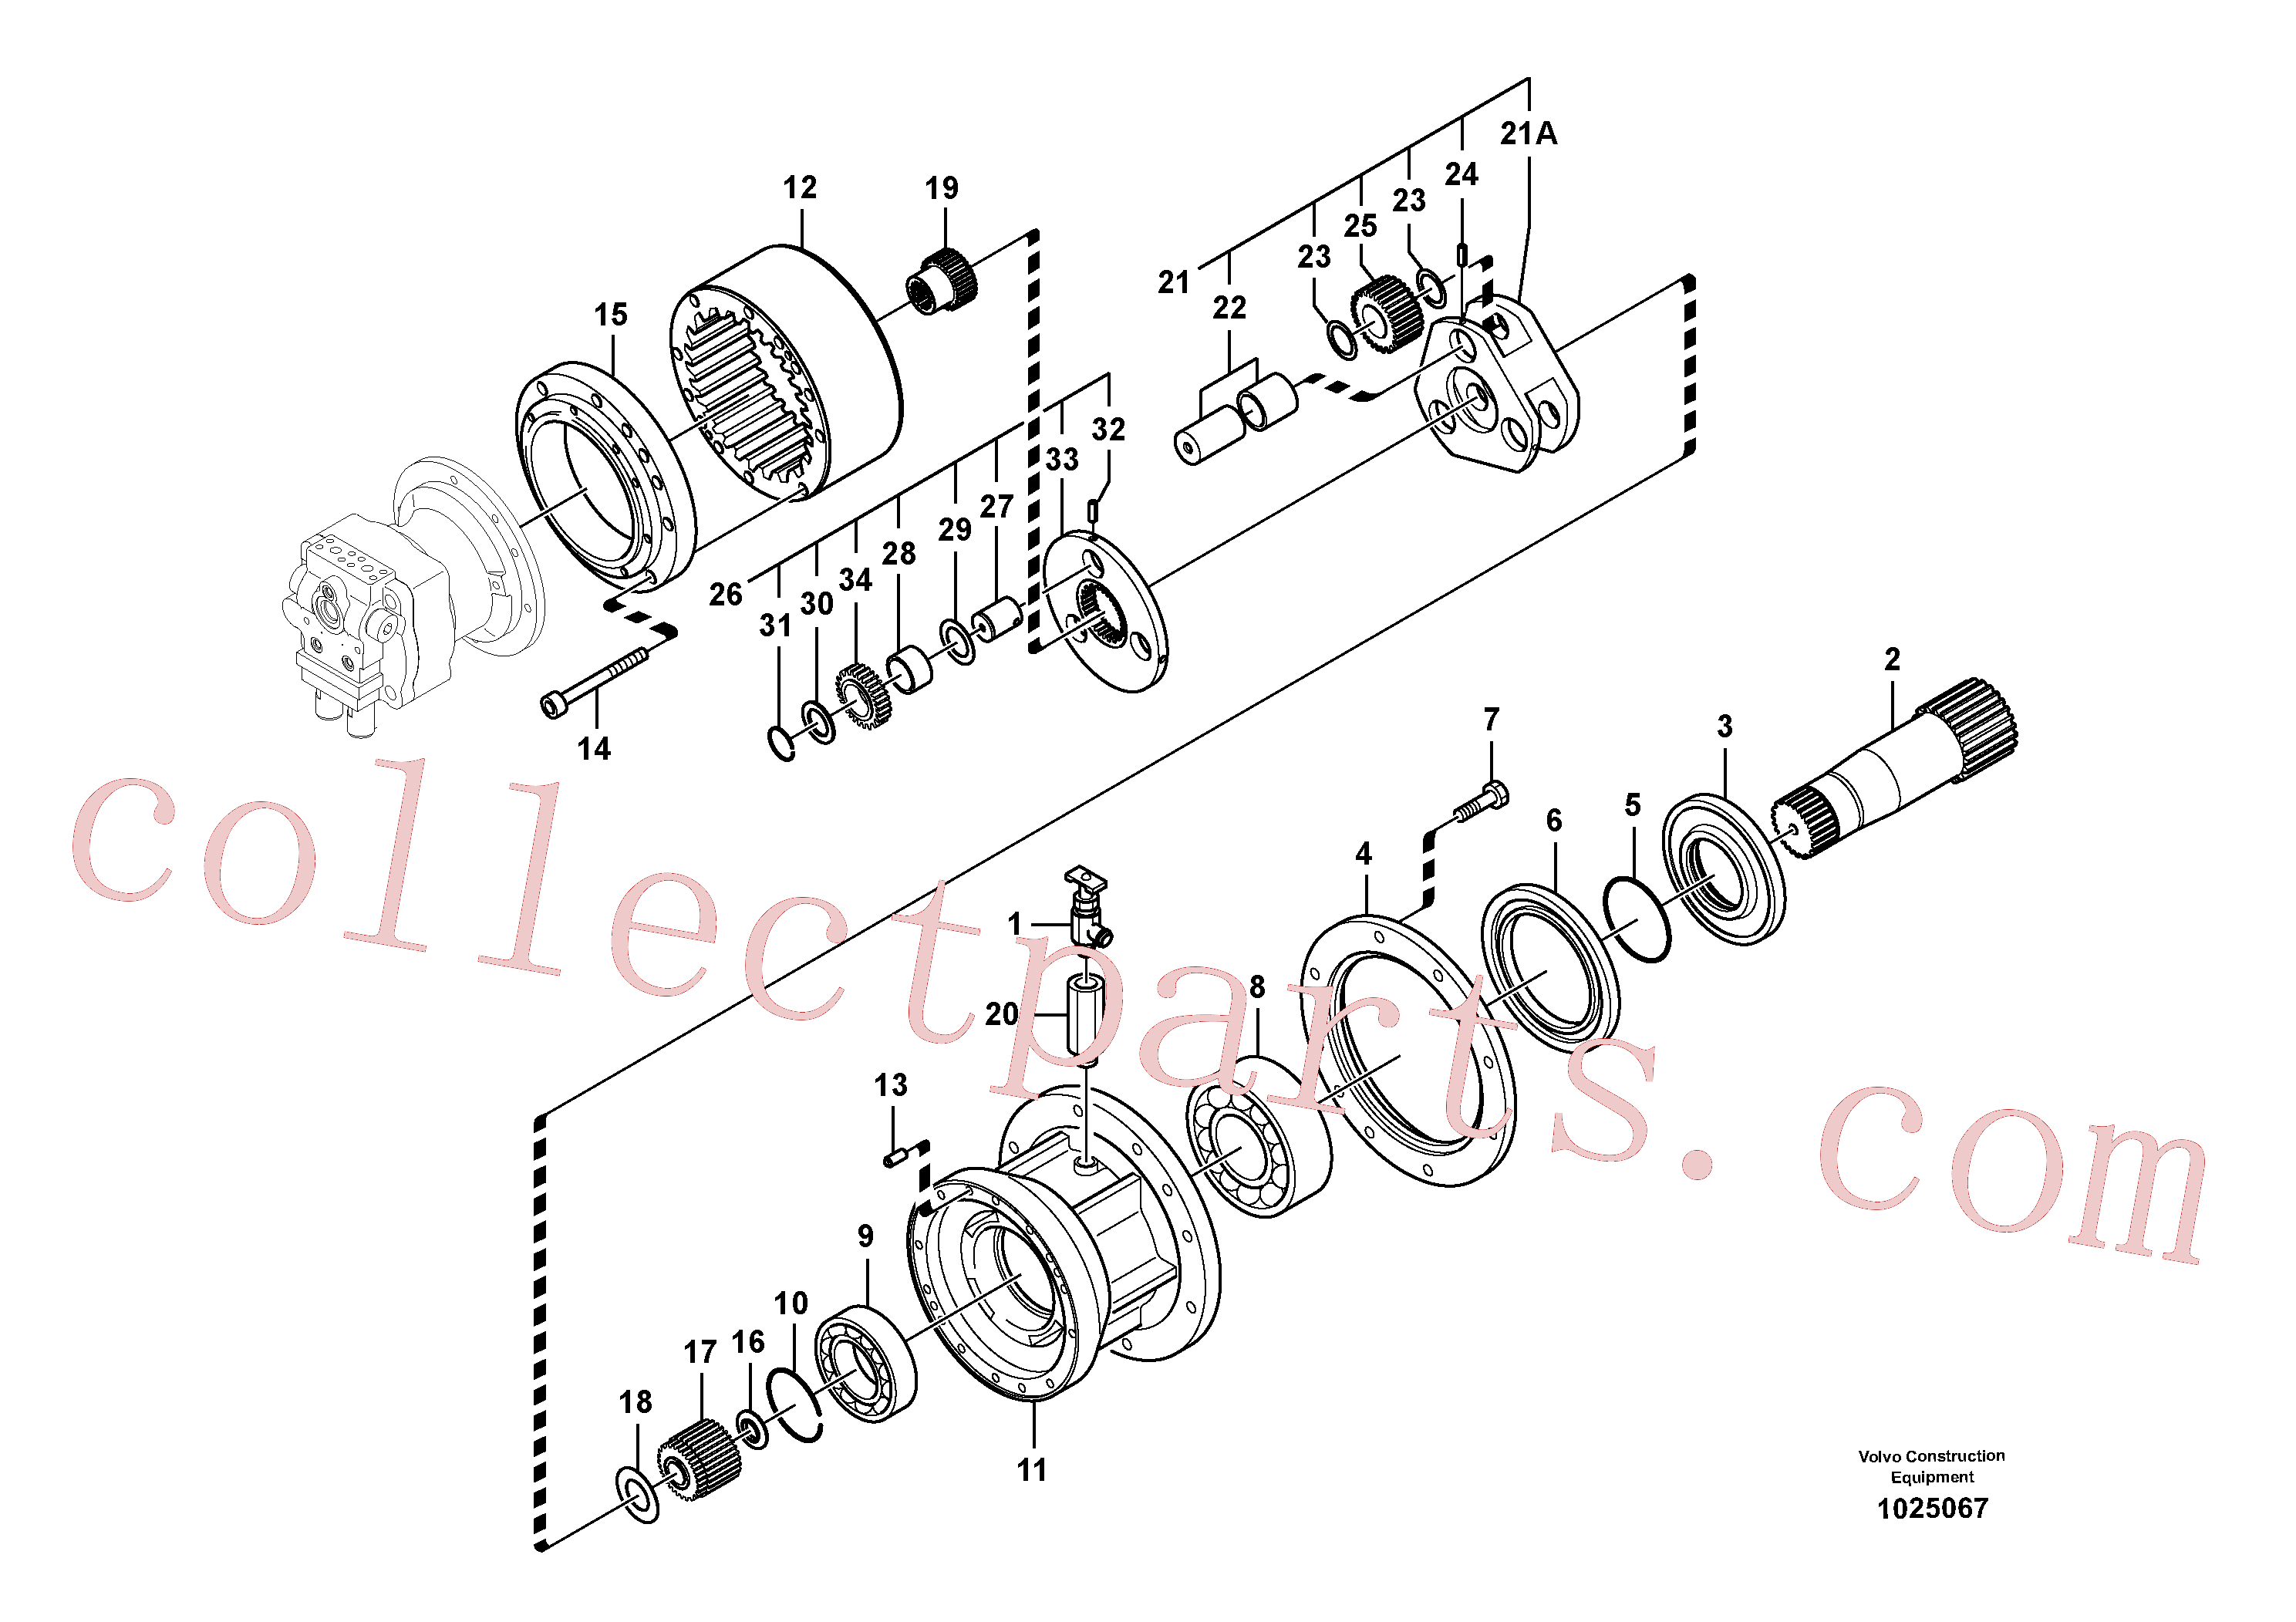 SA7118-30350 for Volvo Swing gearbox(1025067 assembly)